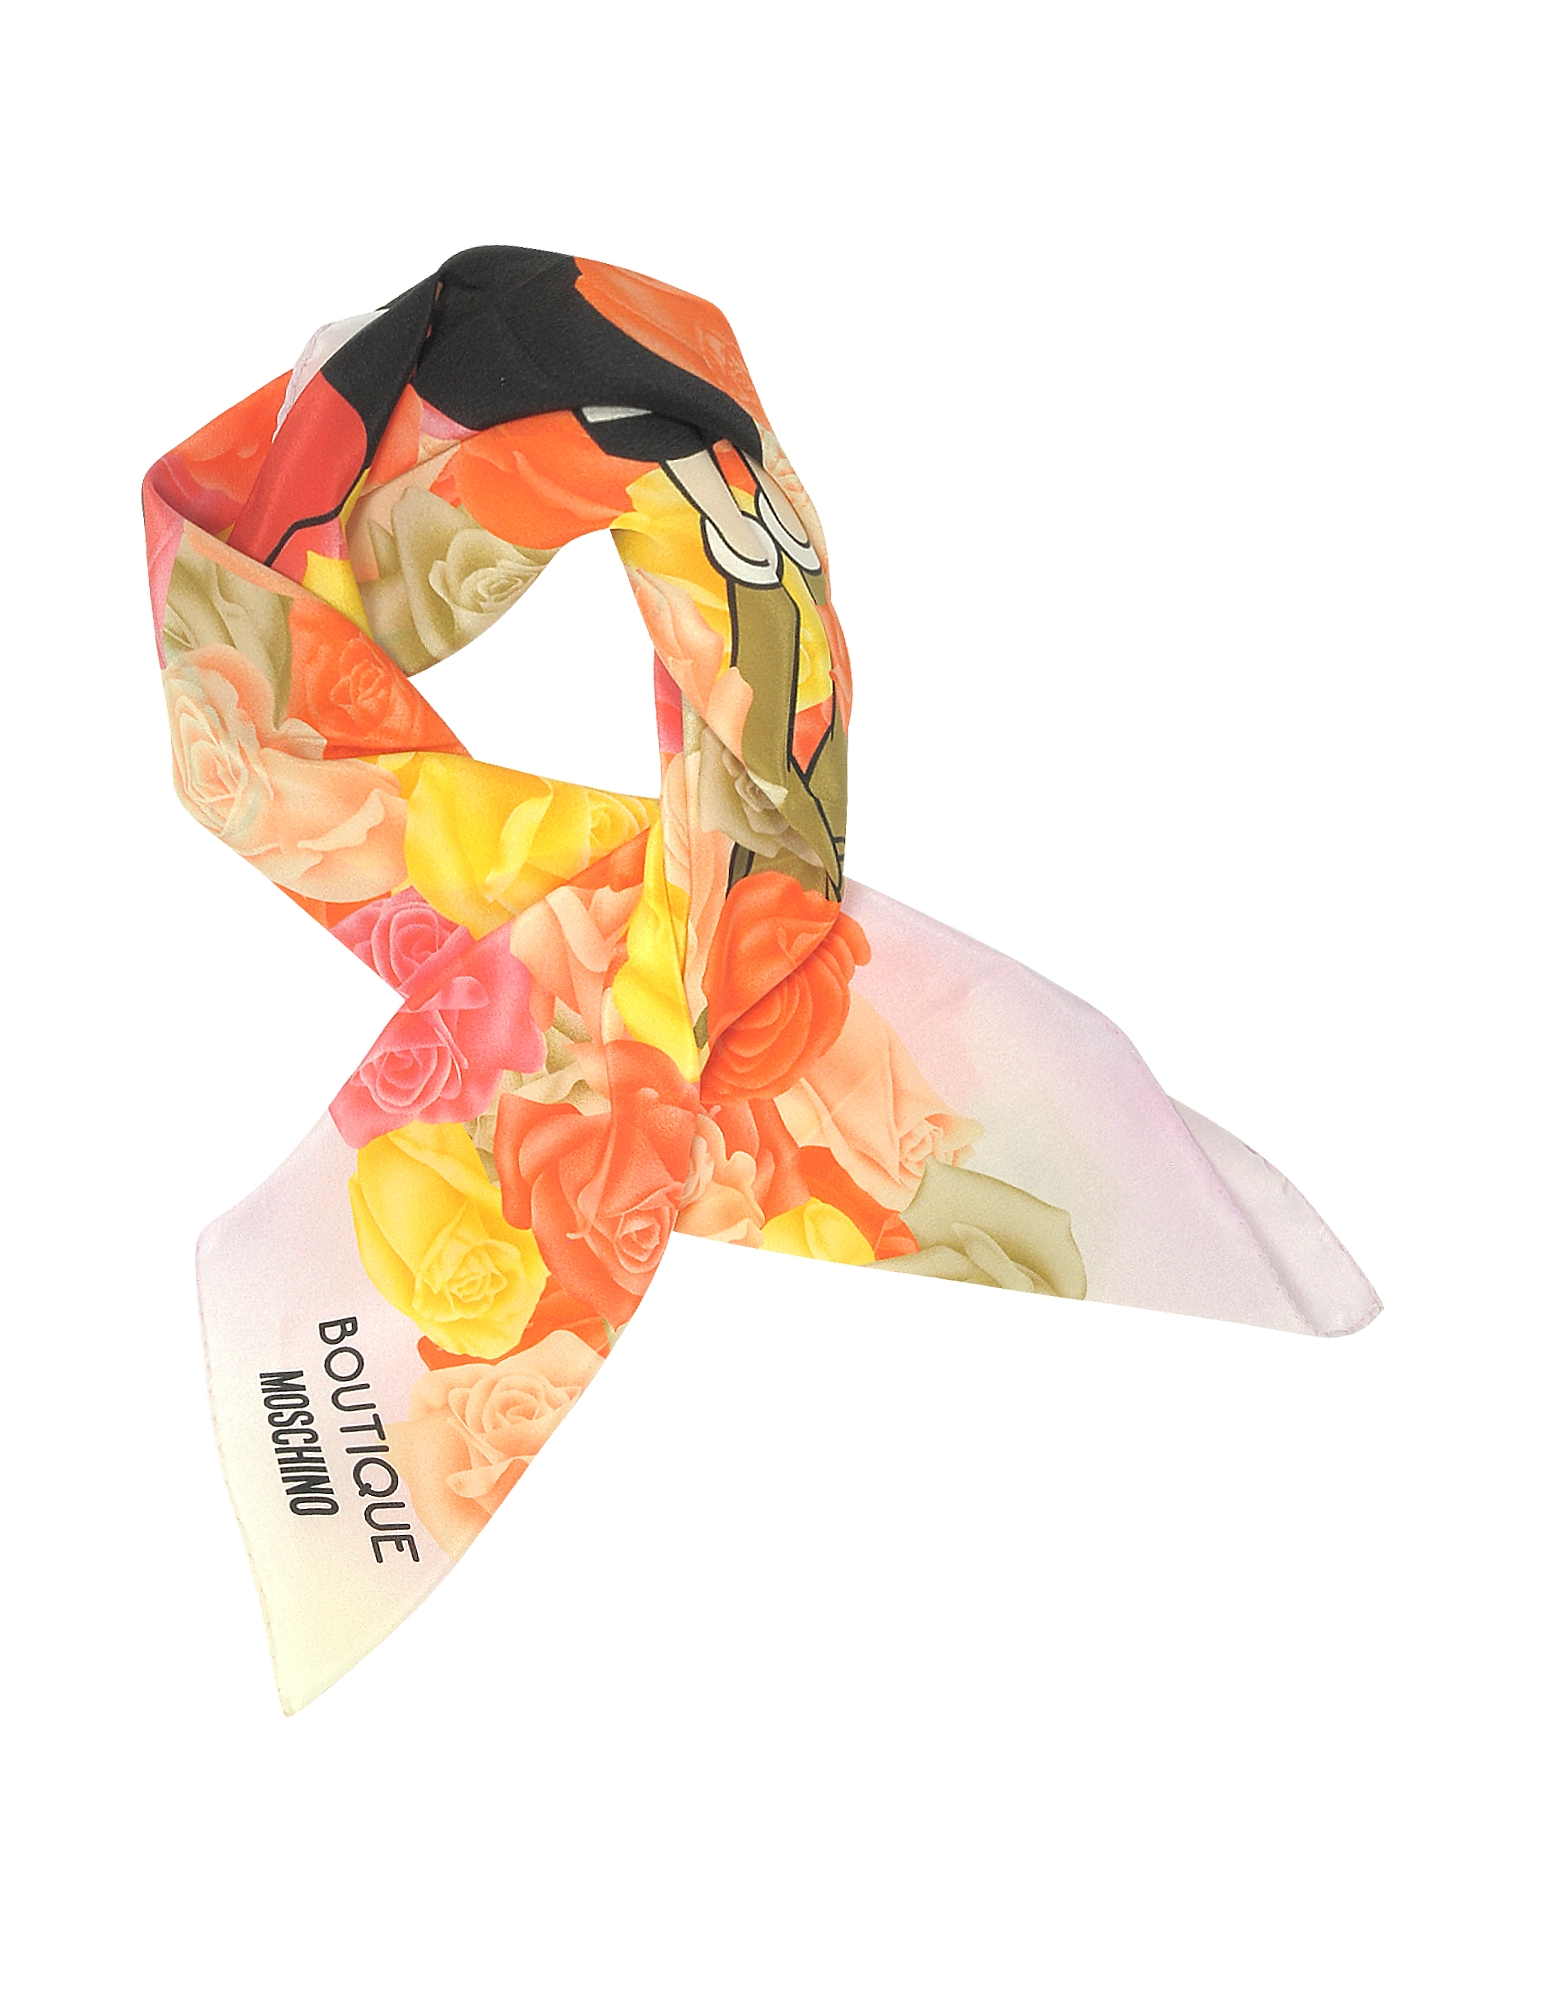 Boutique Moschino Pink and Multicolor Olive Oyl Cartoon & Roses Printed Crepe Silk Square Scarf